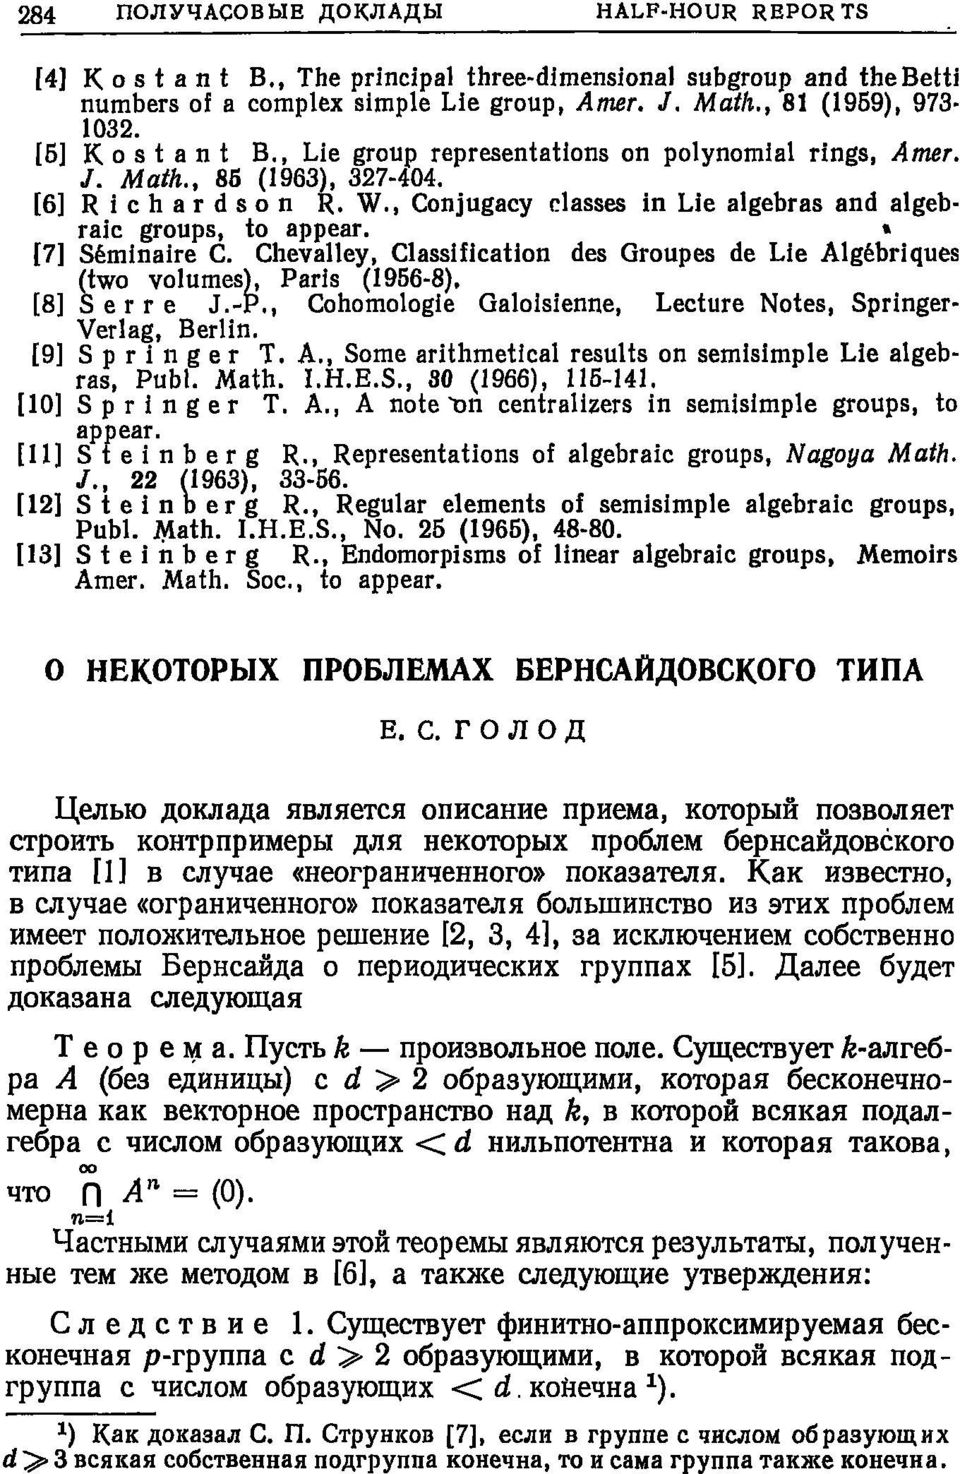 , Conjugacy classes in Lie algebras and algebraic groups, to appear. * [7] Séminaire С. Chevalley, Classification des Groupes de Lie Algébriques (two volumes), Paris (1956-8). [8] Serre J.-P.